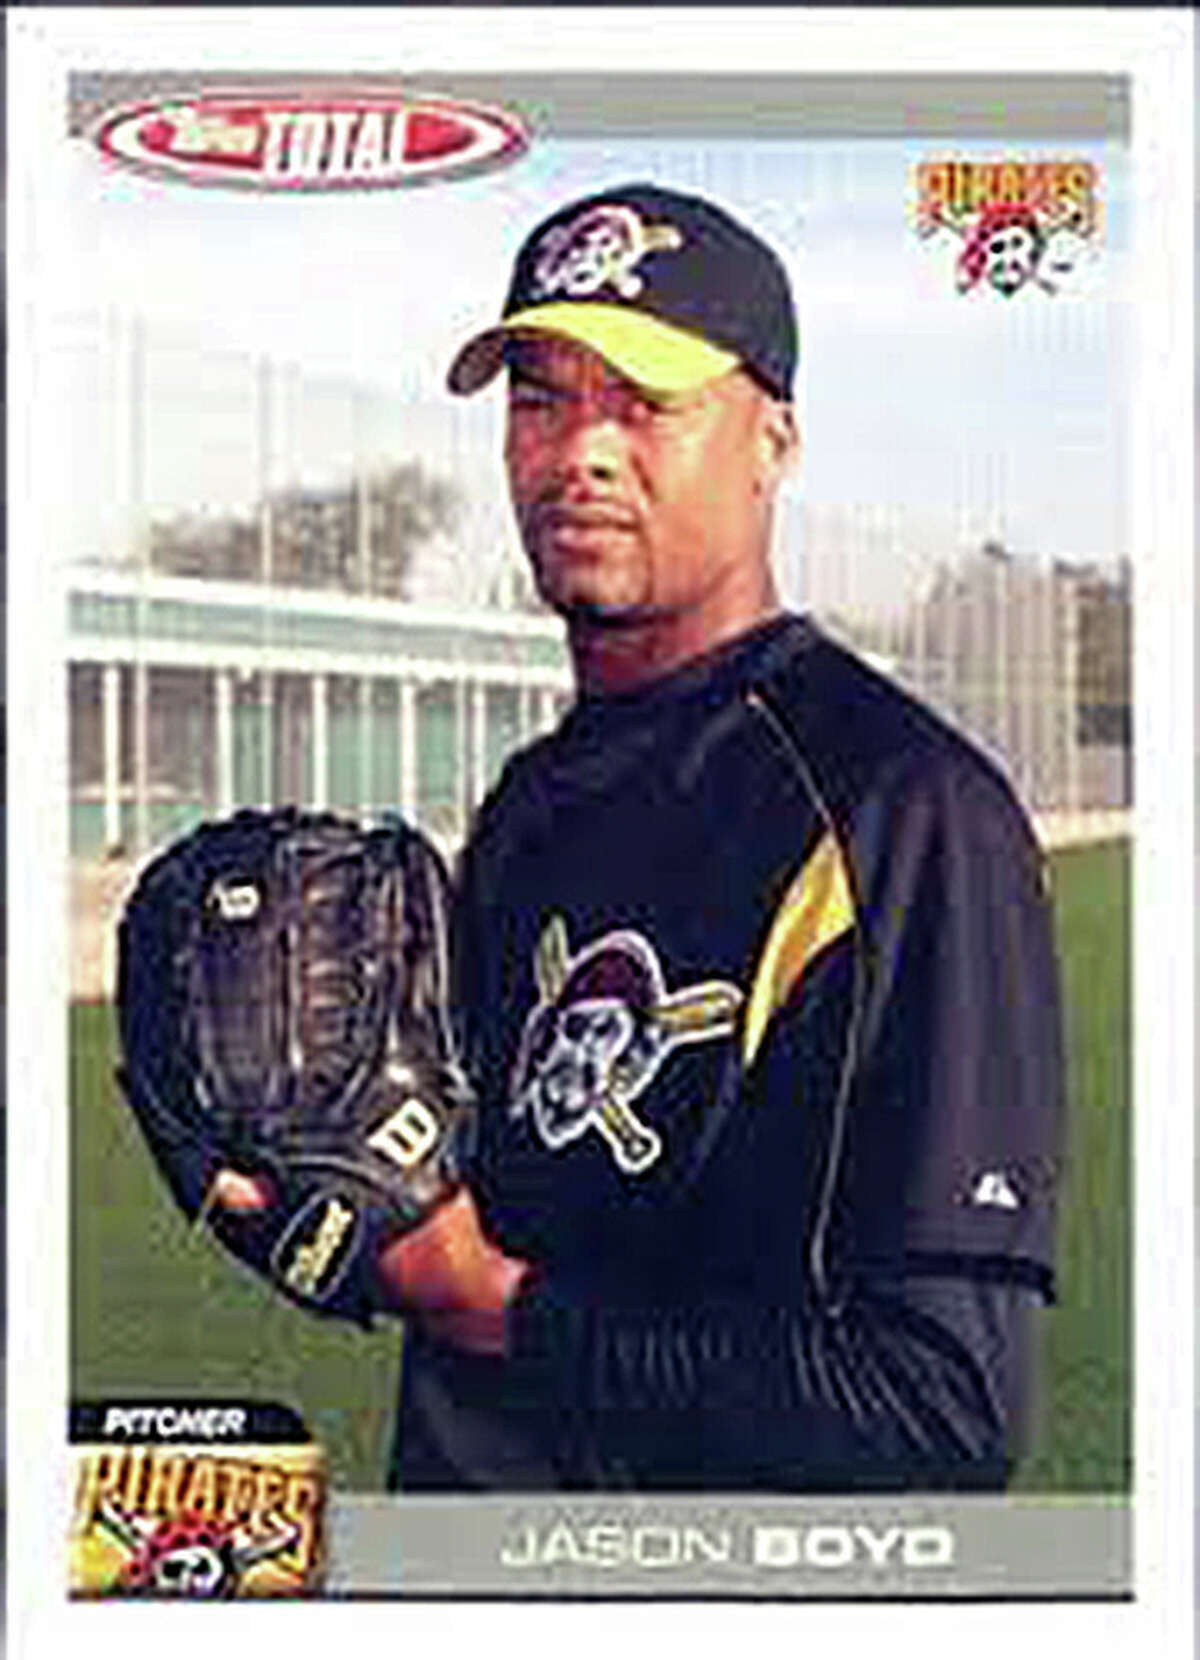 A baseball card of Edwardsville graduate Jason Boyd from his time with the Pittsburgh. Boyd pitched the Pirates in 1999 and again in 2004.